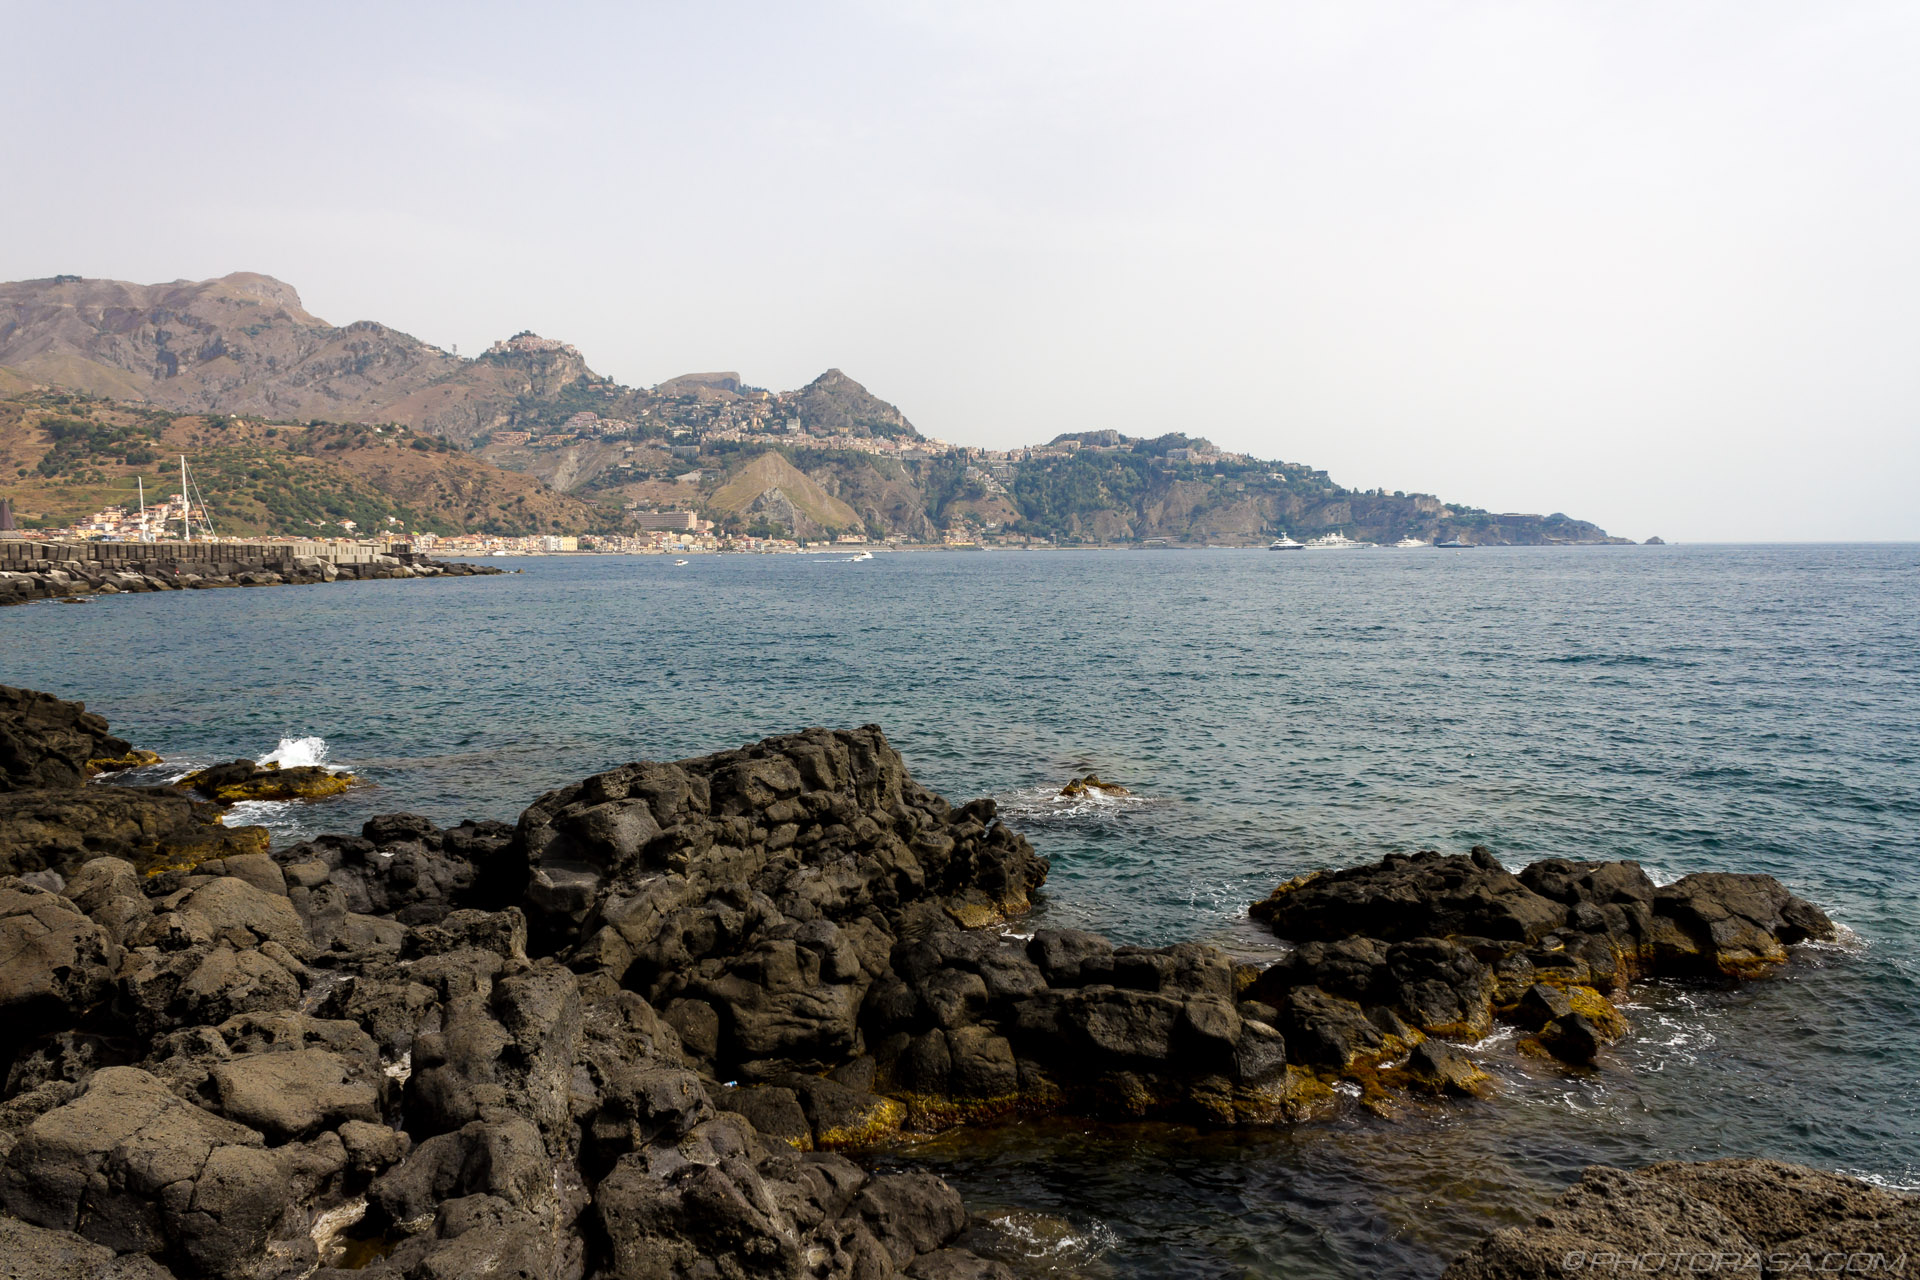 http://photorasa.com/giardini-naxos/giardini-naxos-coast-and-lava-rocks/